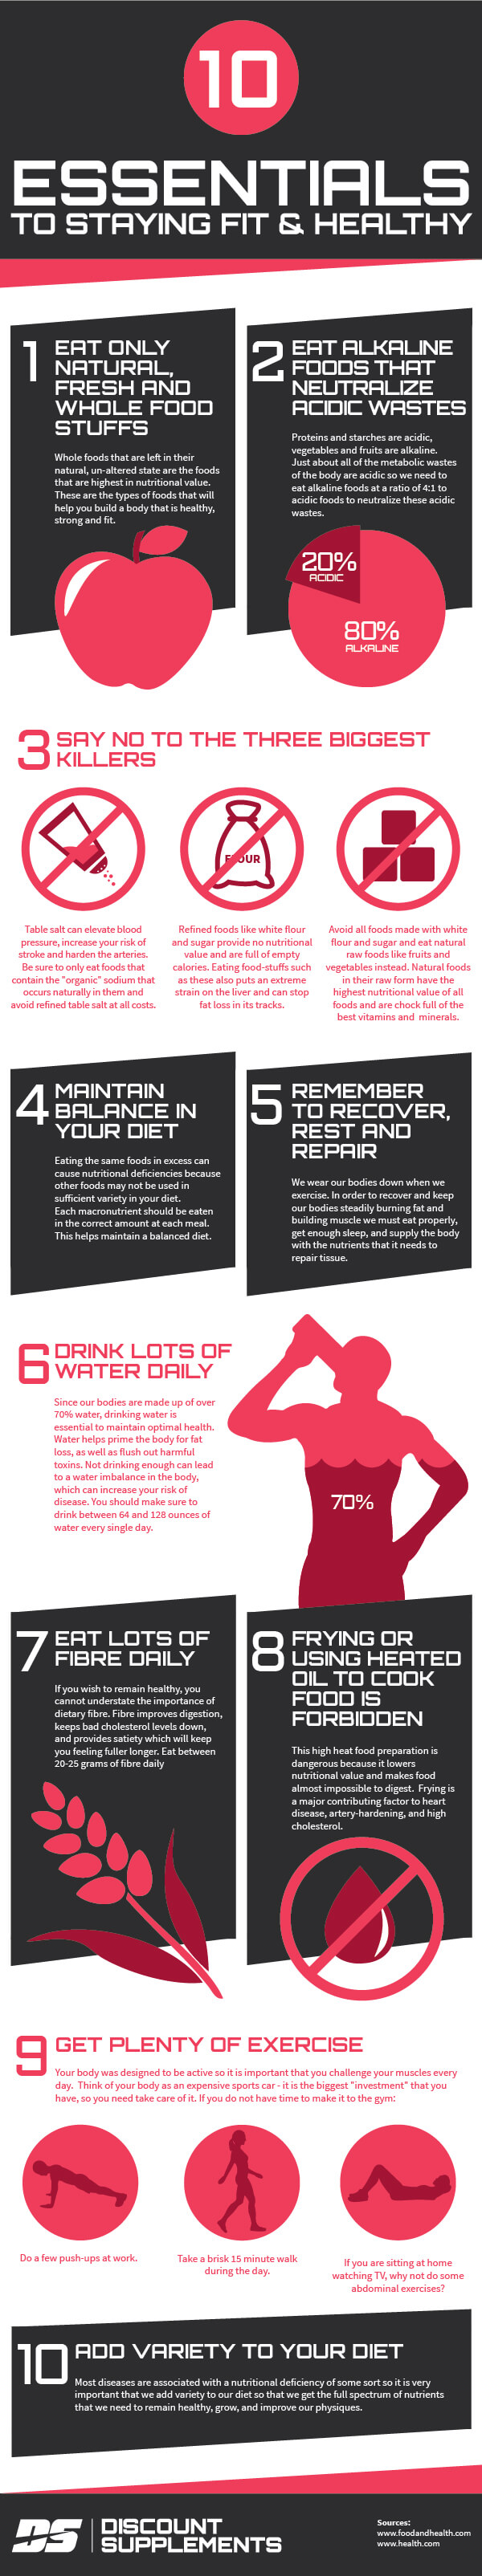 10-Essential-for-staying-fit-and-healthy (1)